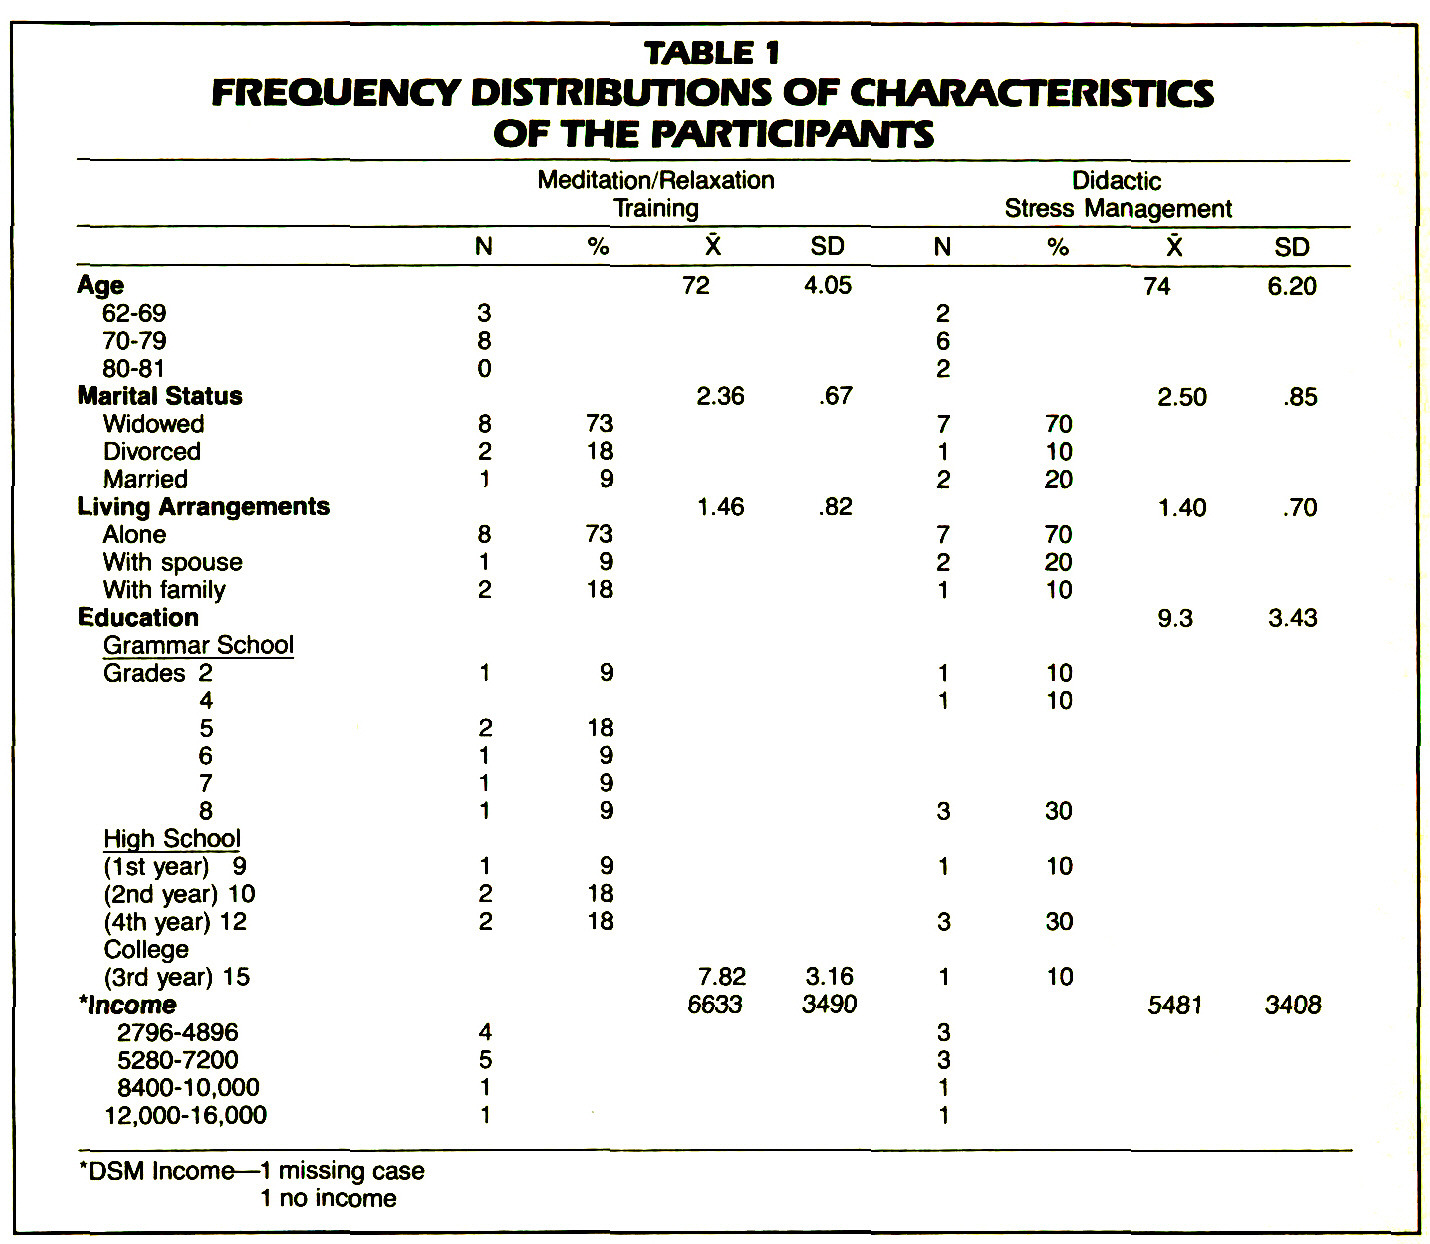 TABLE 1FREQUENCY DISTRIBUTIONS OF CHARACTERISTICS OF THE PARTICIPANTS